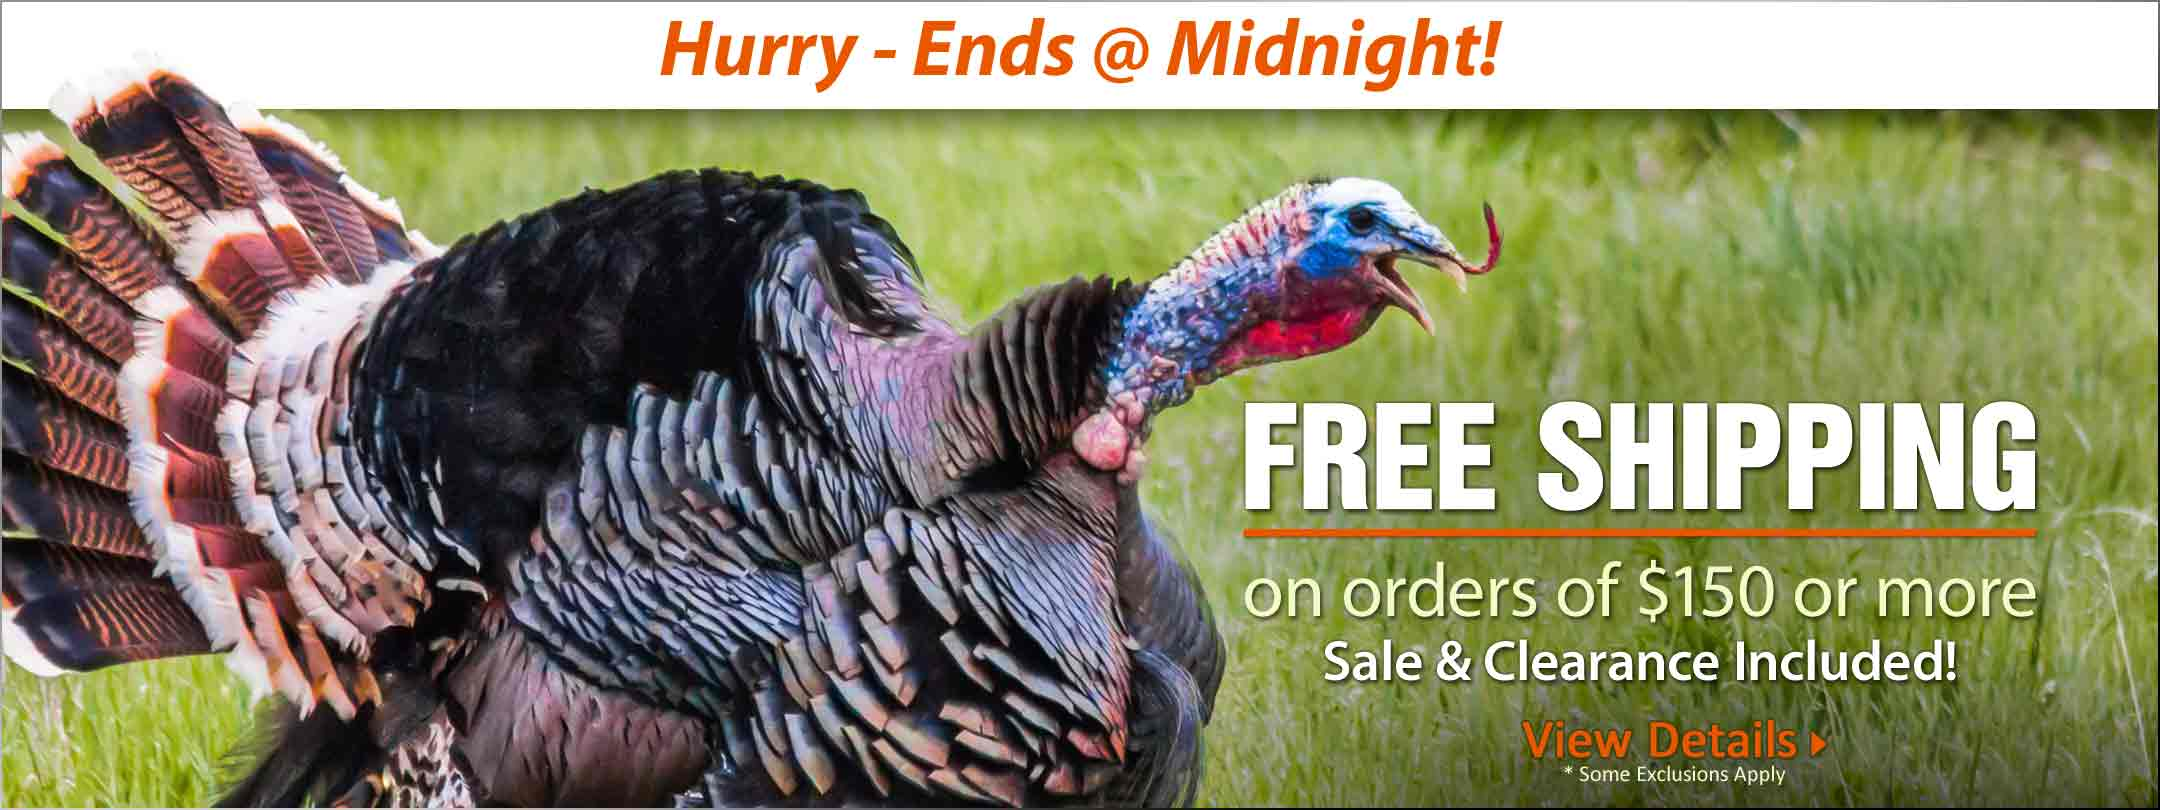 Hurry - Free Shipping Offer Ends @ Midnight!